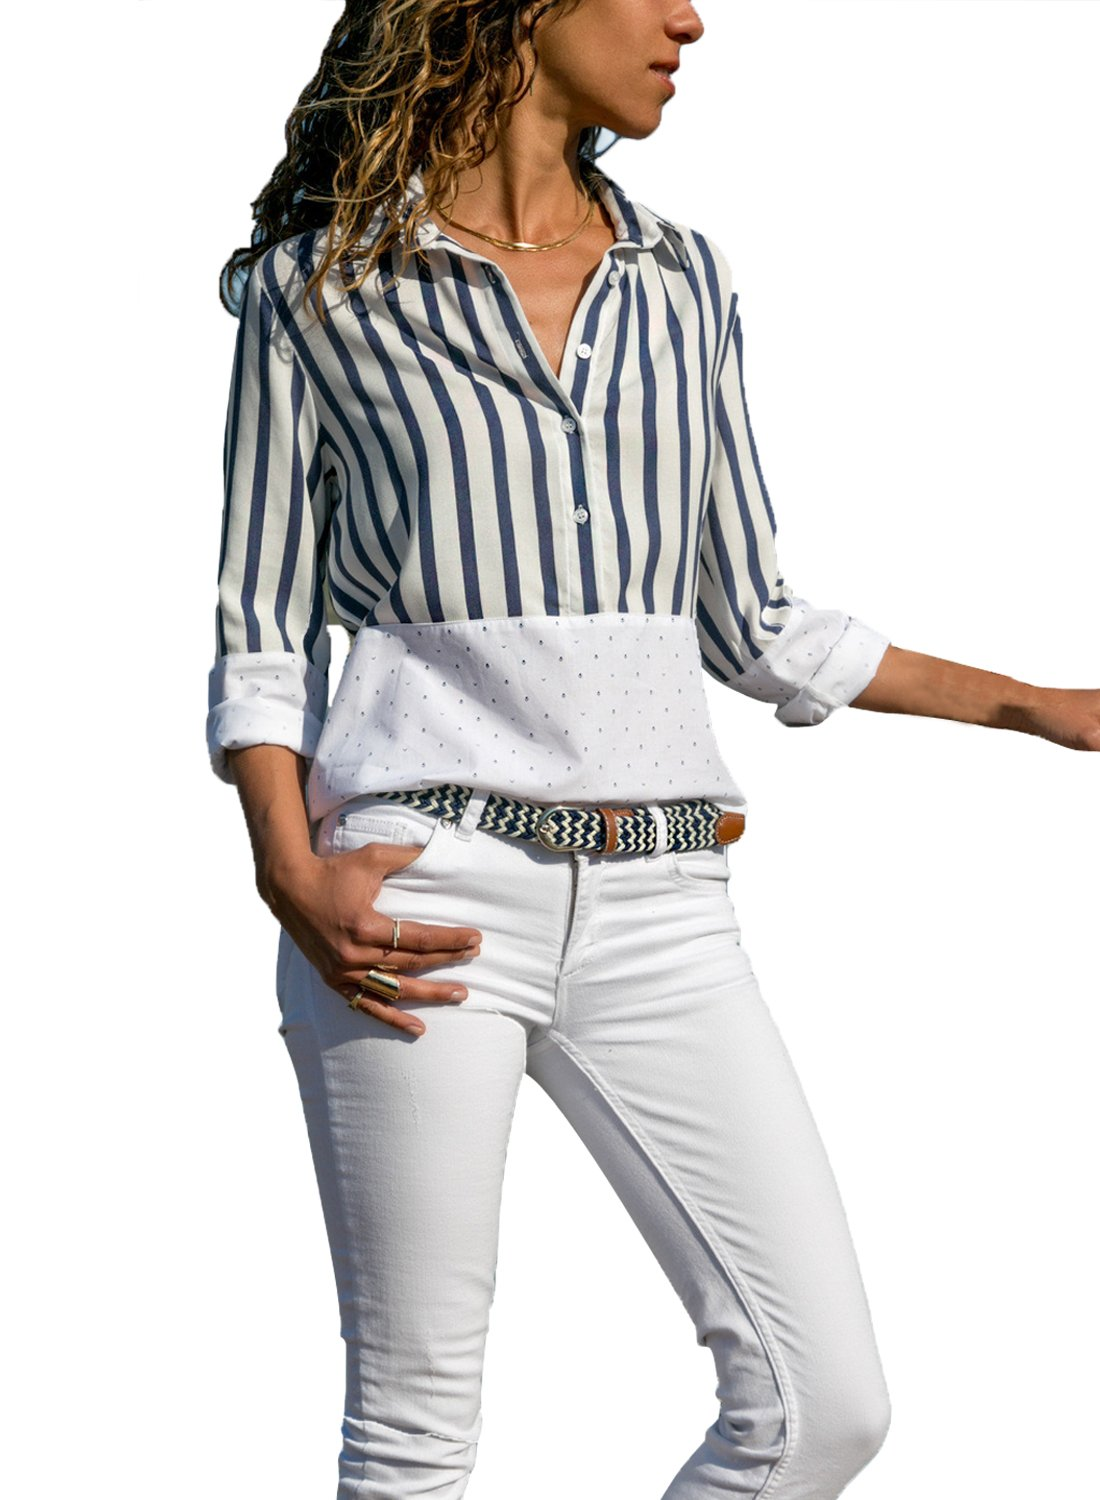 ROSKIKI Womens Long Sleeve Striped Plus Size Tops Cuffed Contrast Colorblock Blouses Cotton Button Down Loose Fit Shirts White XXL